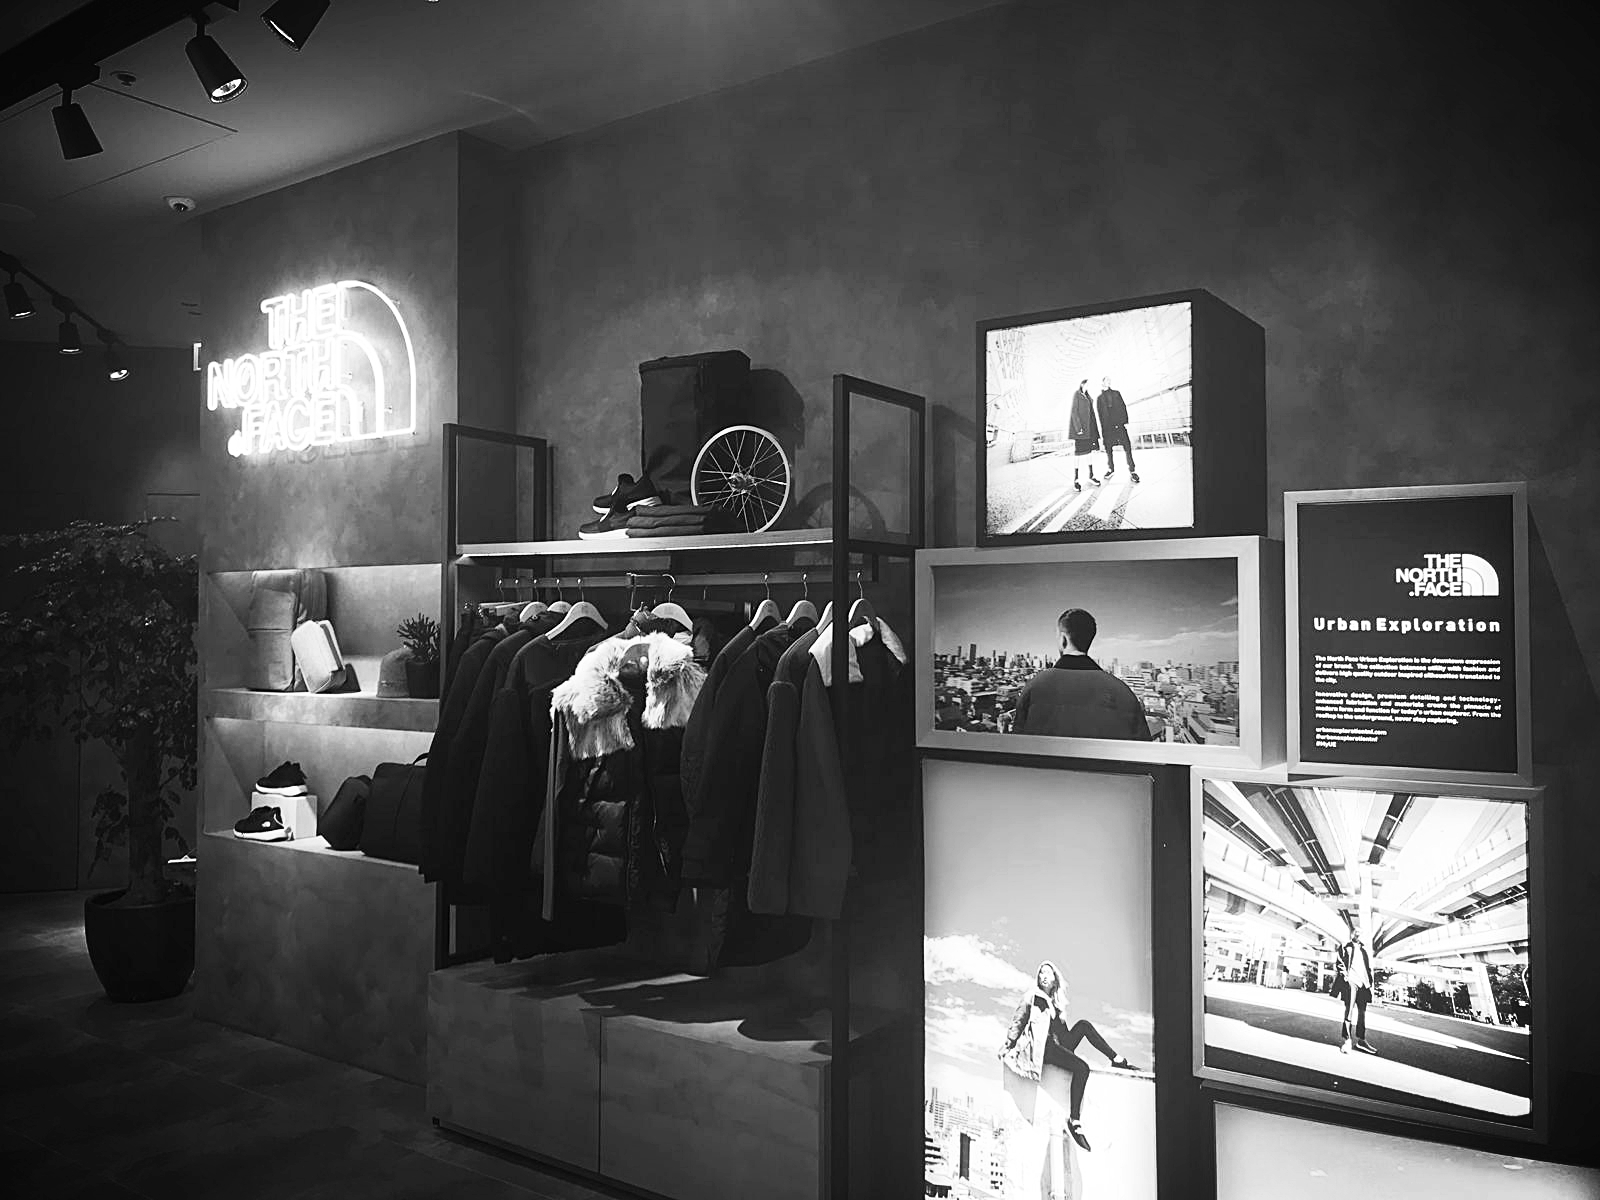 The final product was shown in stores around Hong Kong, showcasing the A/W 2018 capsule collection.